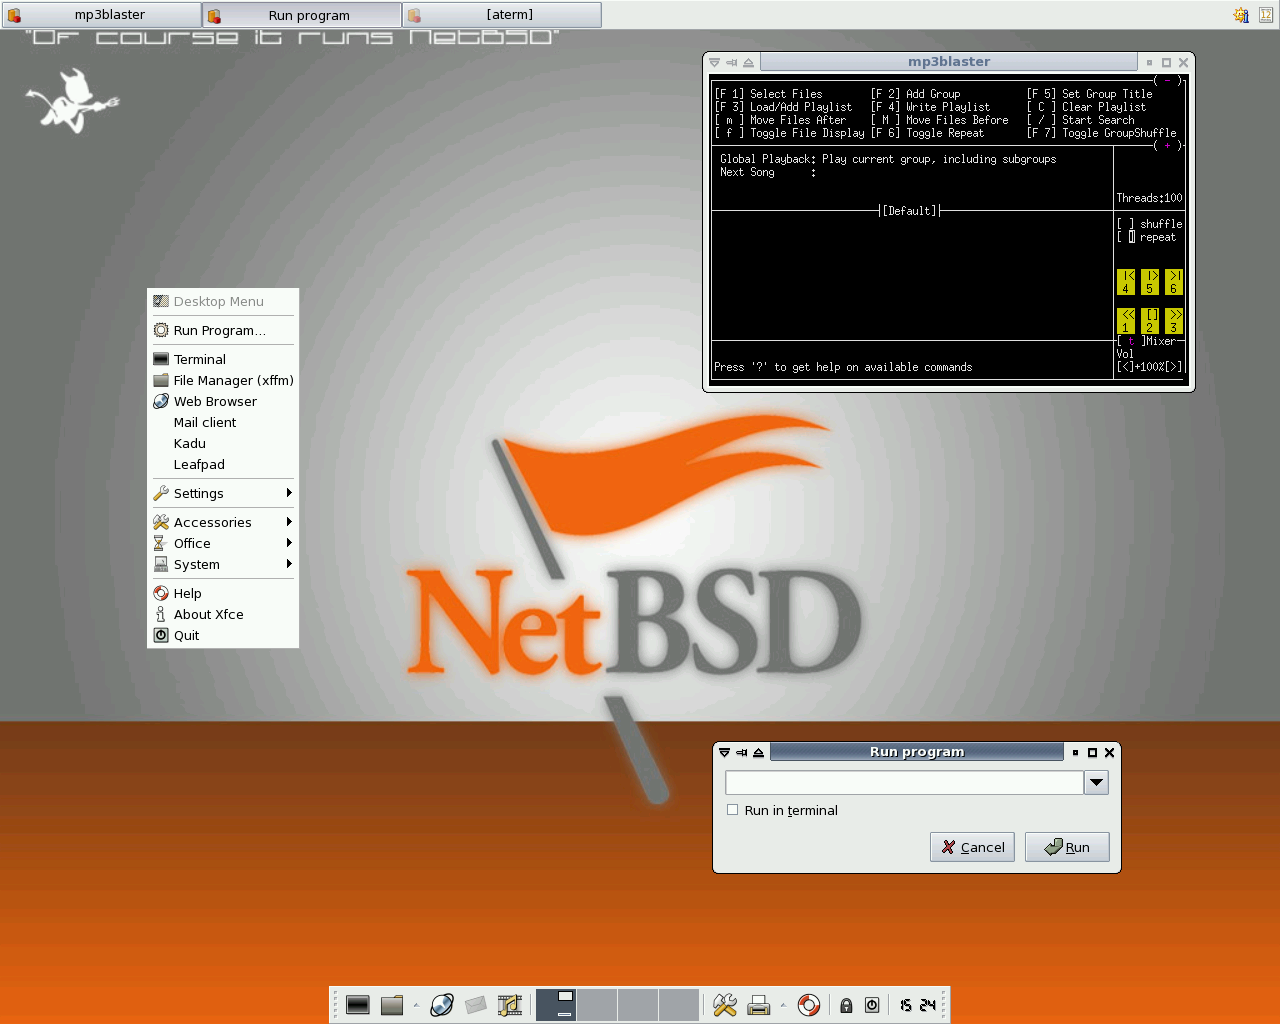 NetBSD picture